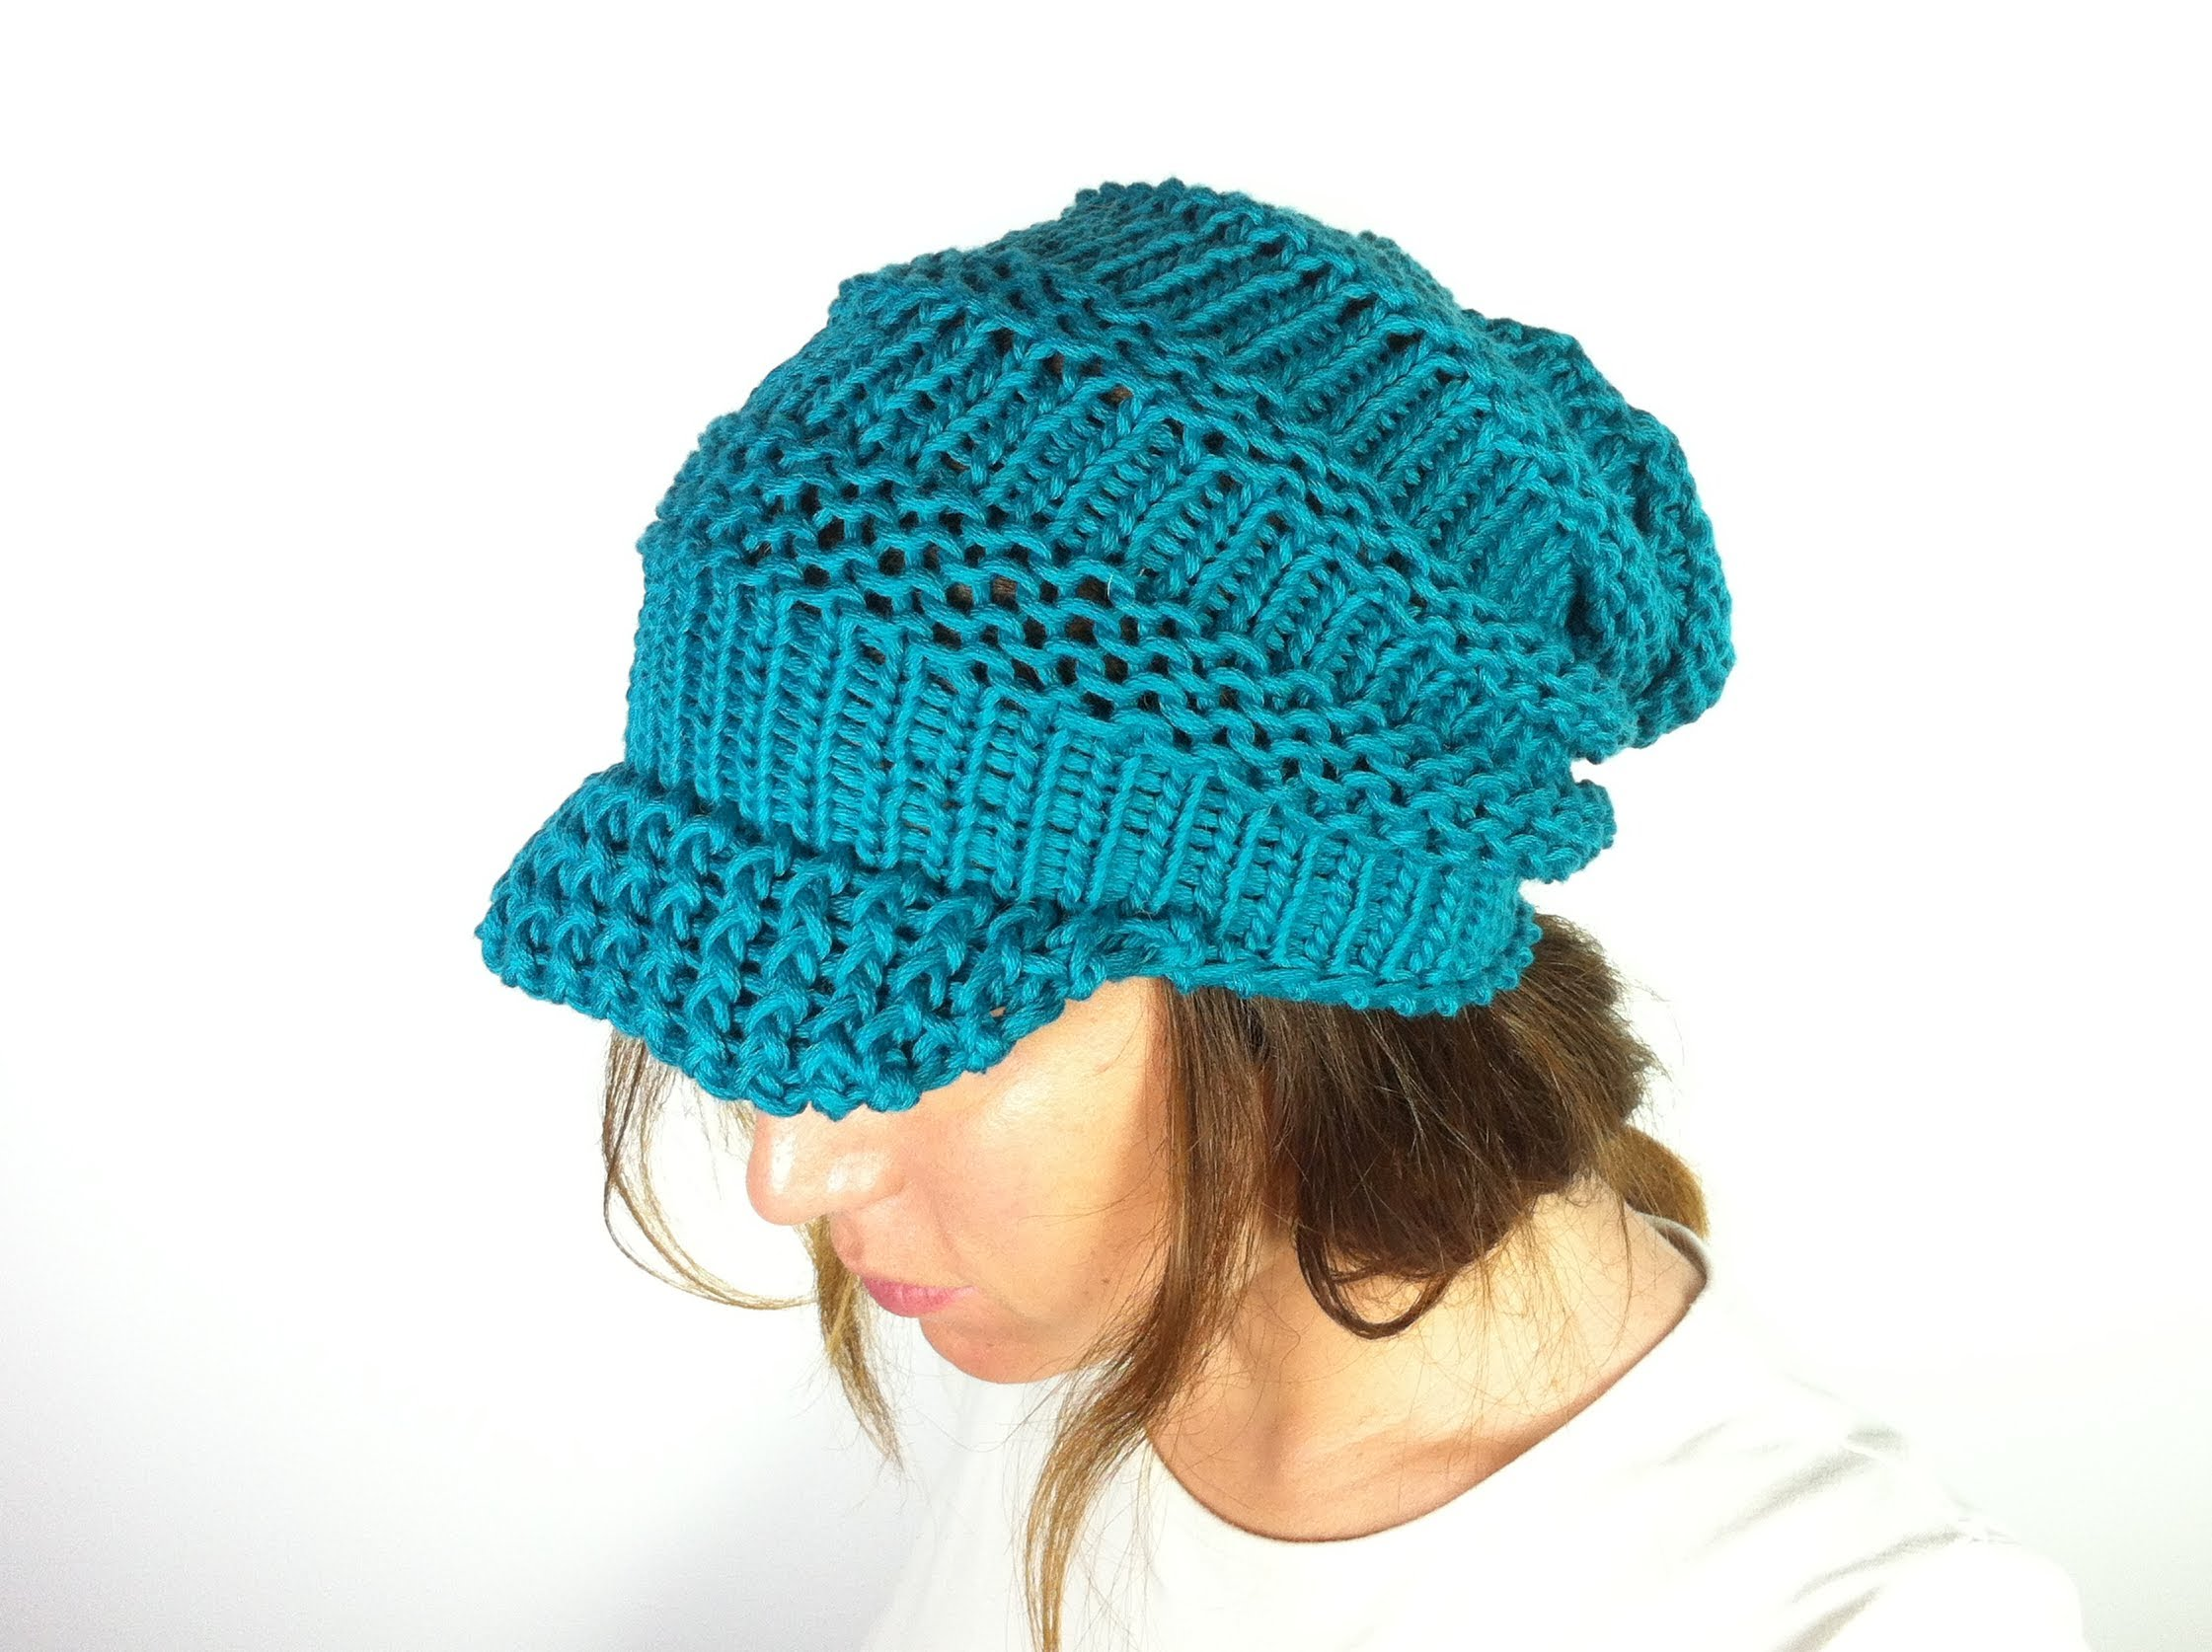 Knitting Loom Hat Stitches : Loom Knit Slouchy Hat Patterns A Knitting Blog